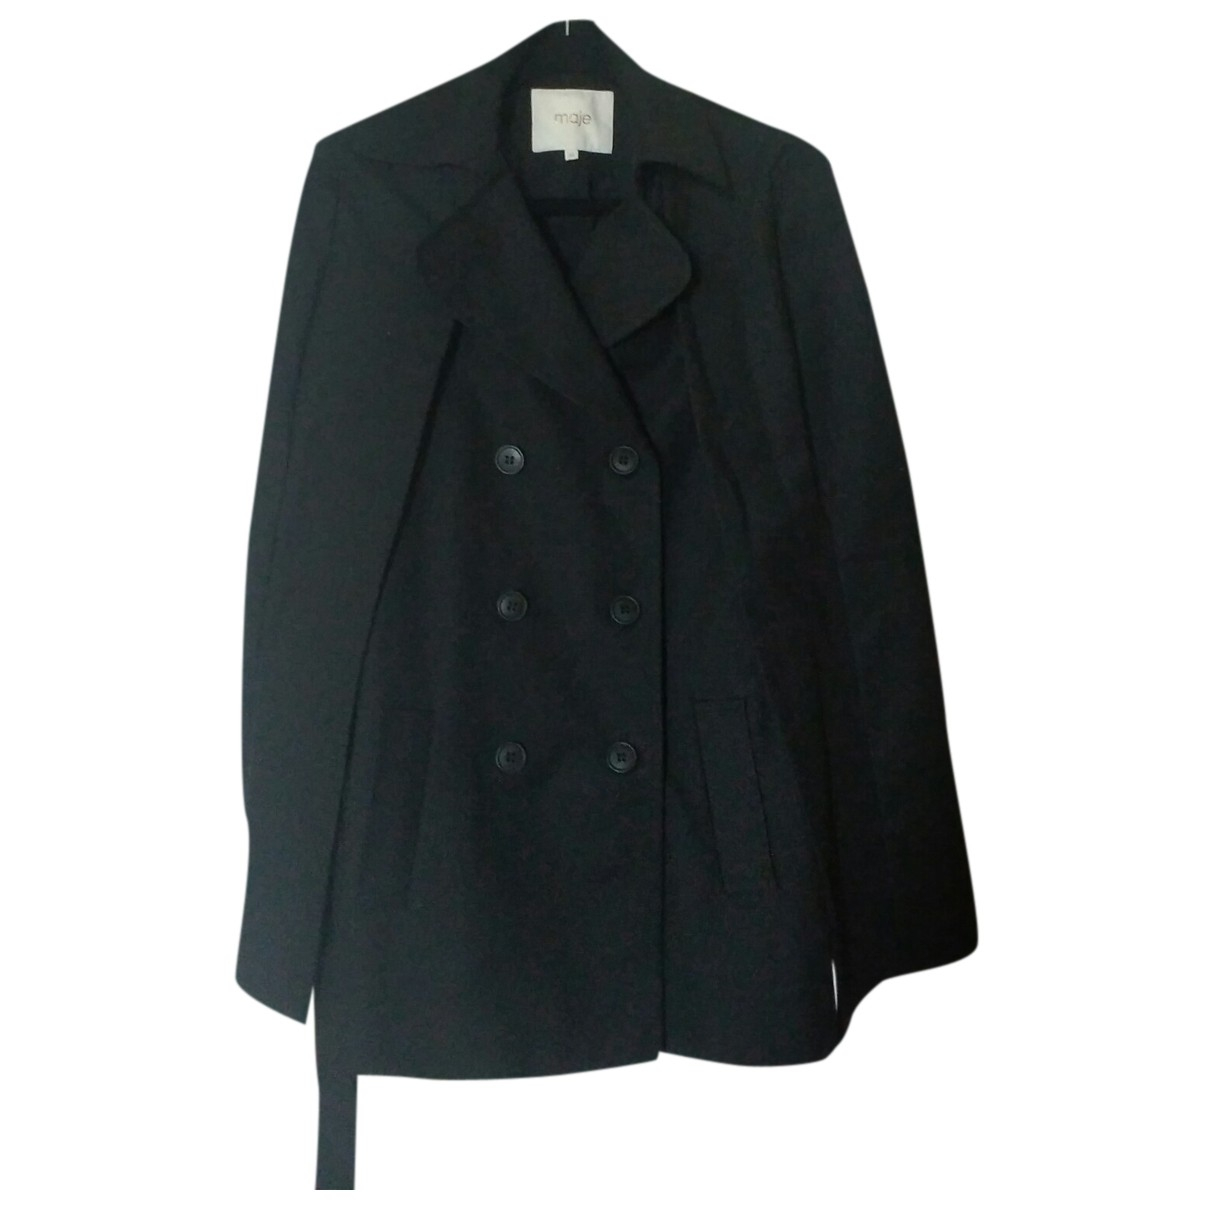 Maje N Black Cotton Trench coat for Women 36 FR